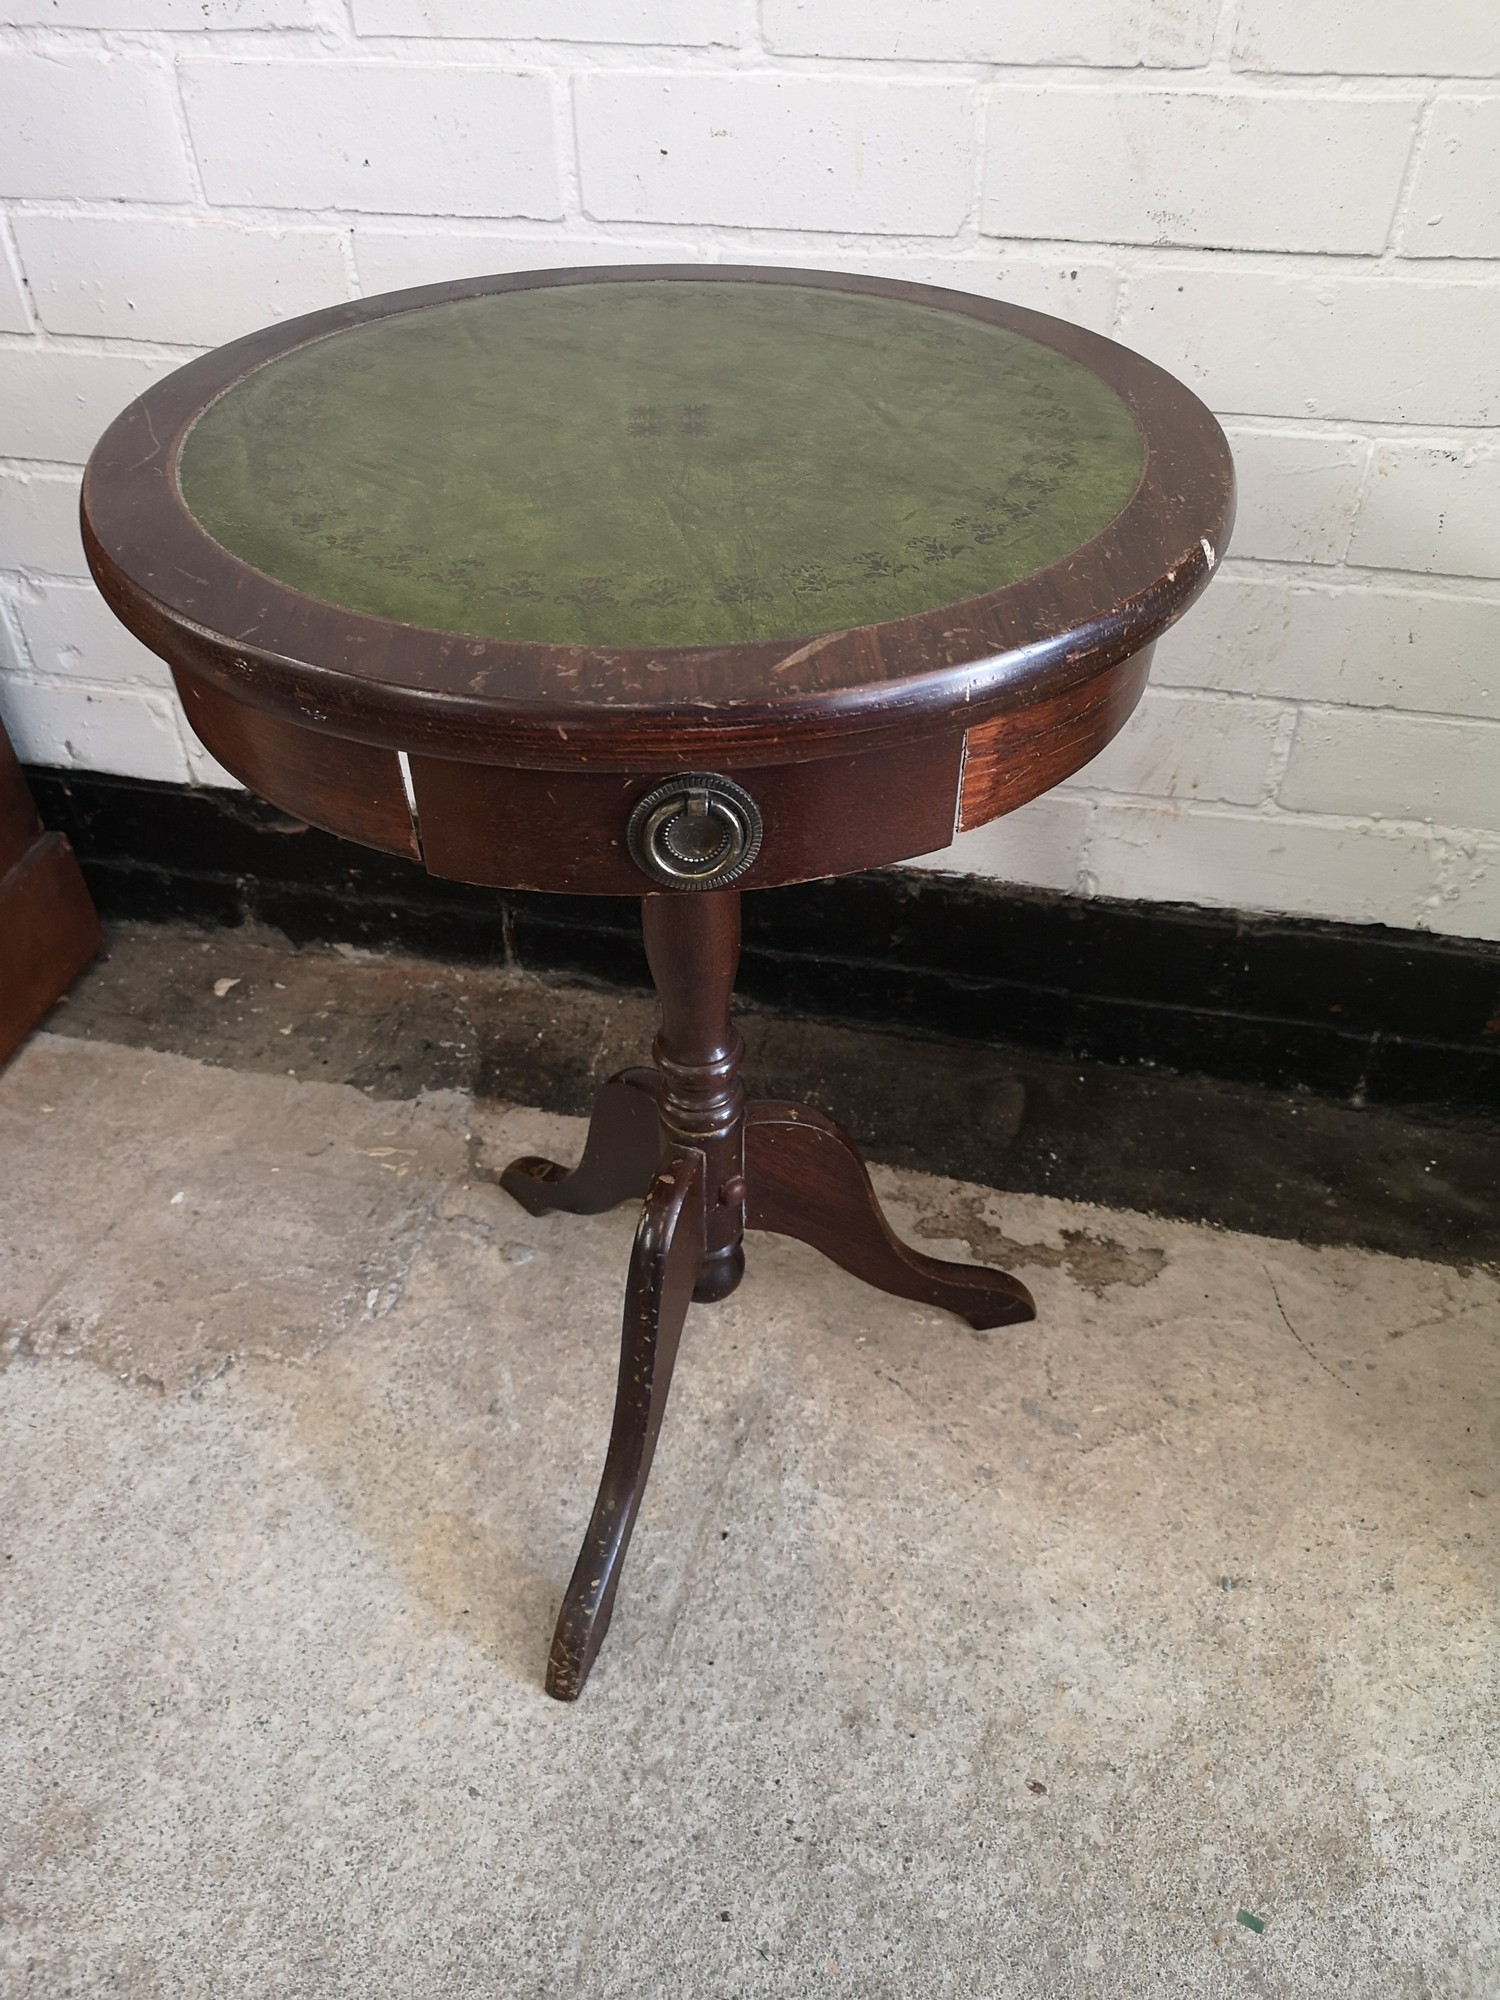 Vintage 1 drawer table with leather top.